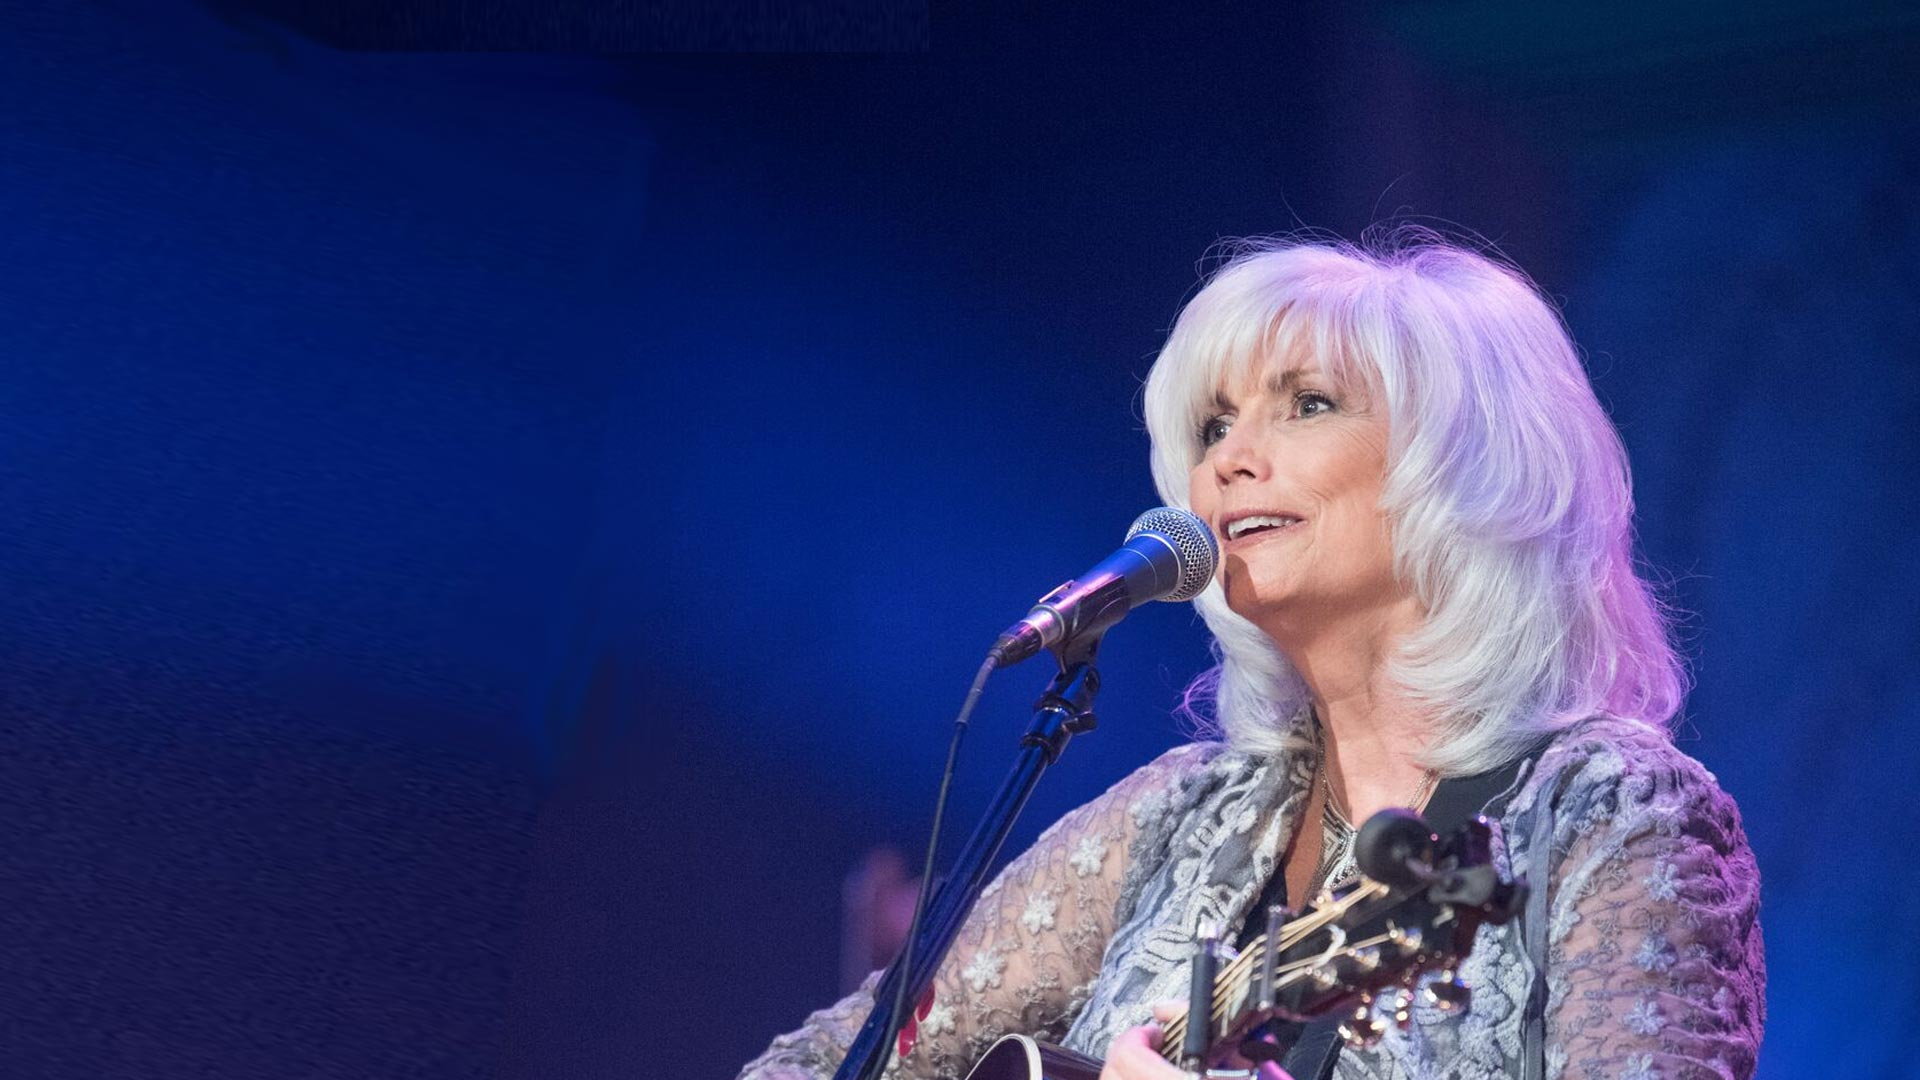 Emmylou Harris at the Ryman Auditorium